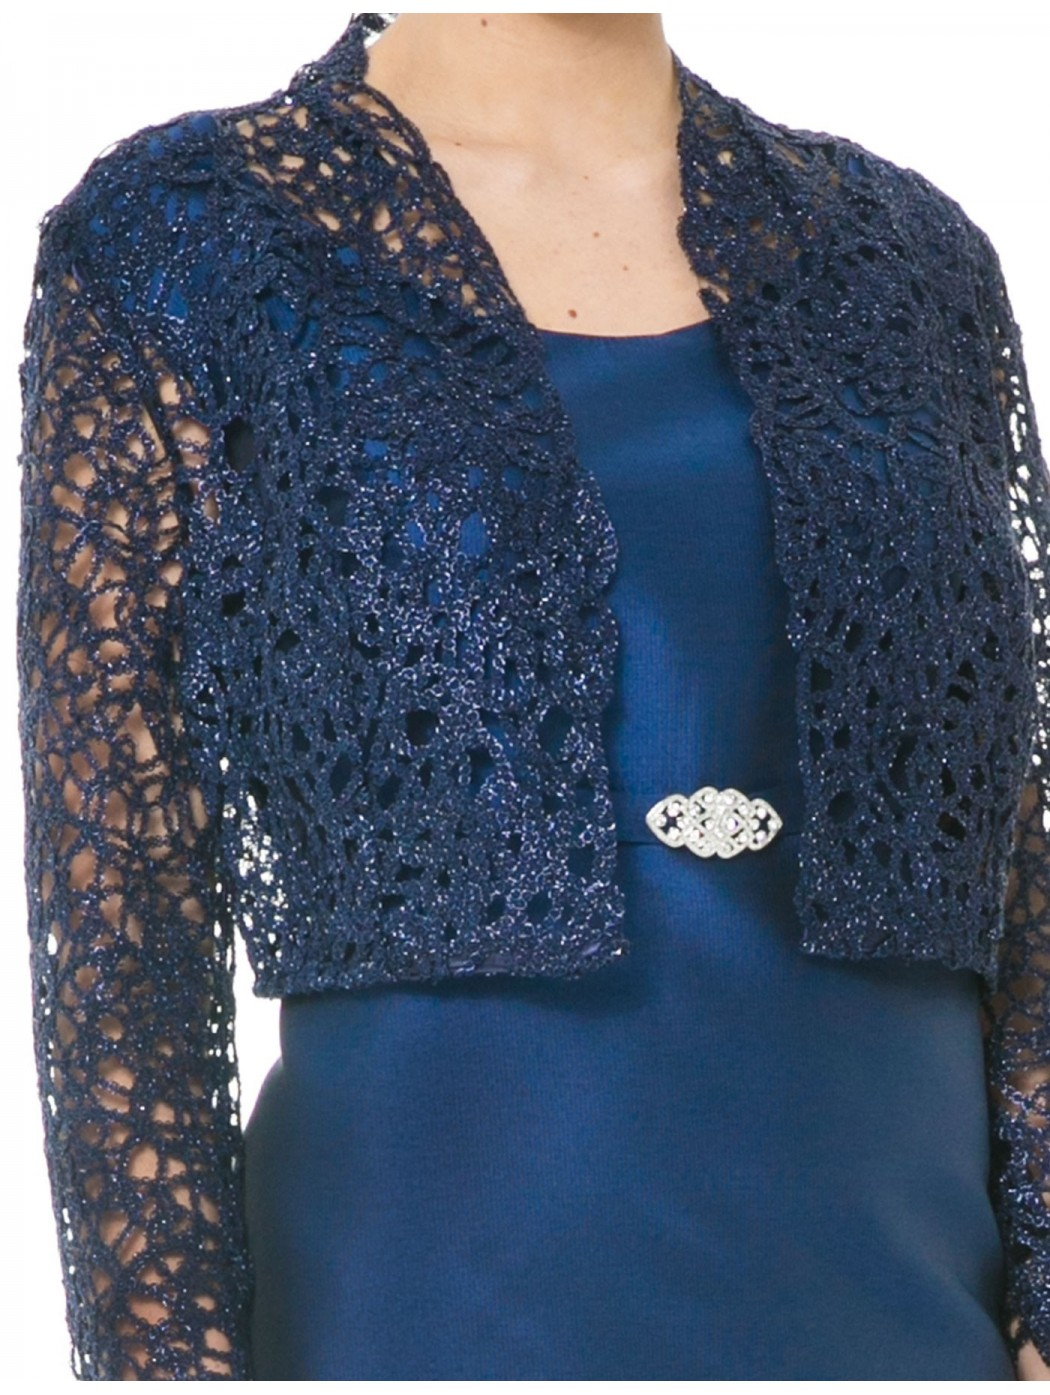 Sonia Pena 1170161 blue bolero shrug jacket